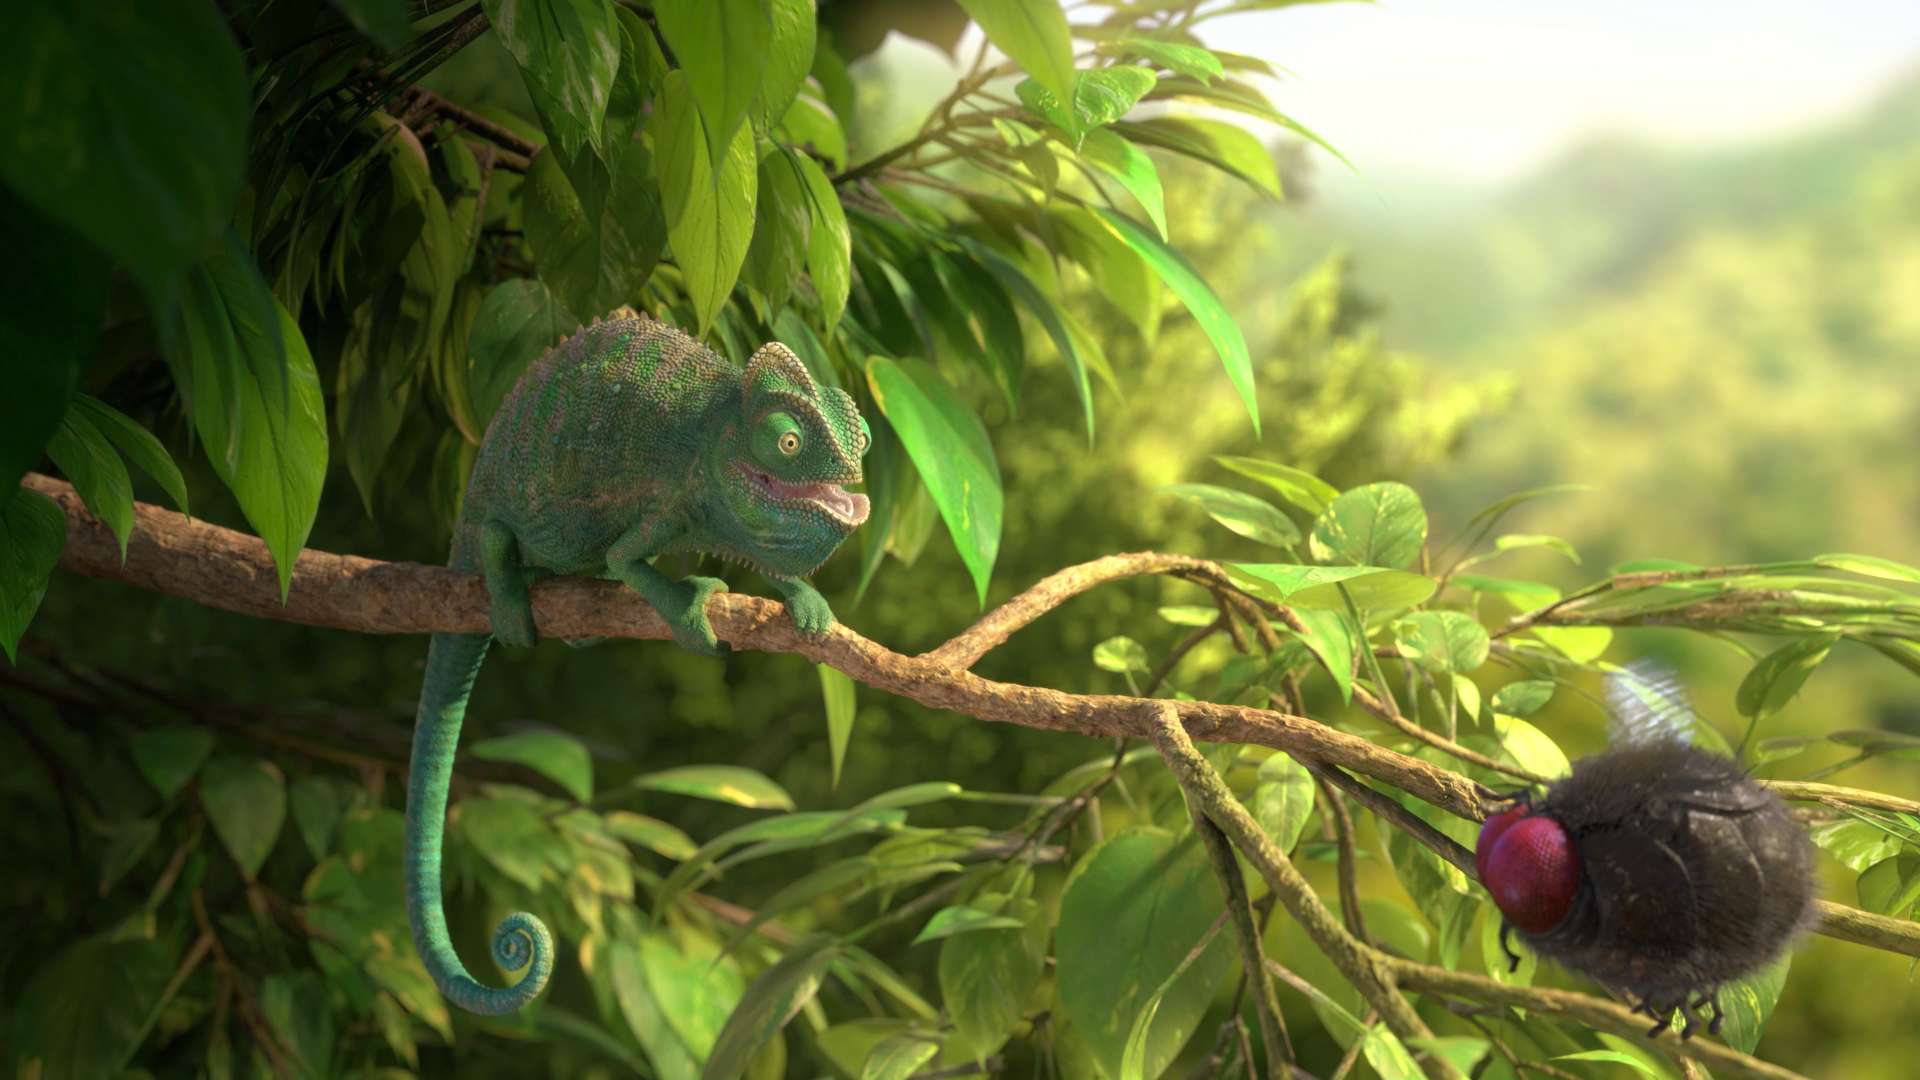 29590_Still_02_Our-Wonderful-Nature_The-Common-Chameleon.jpg